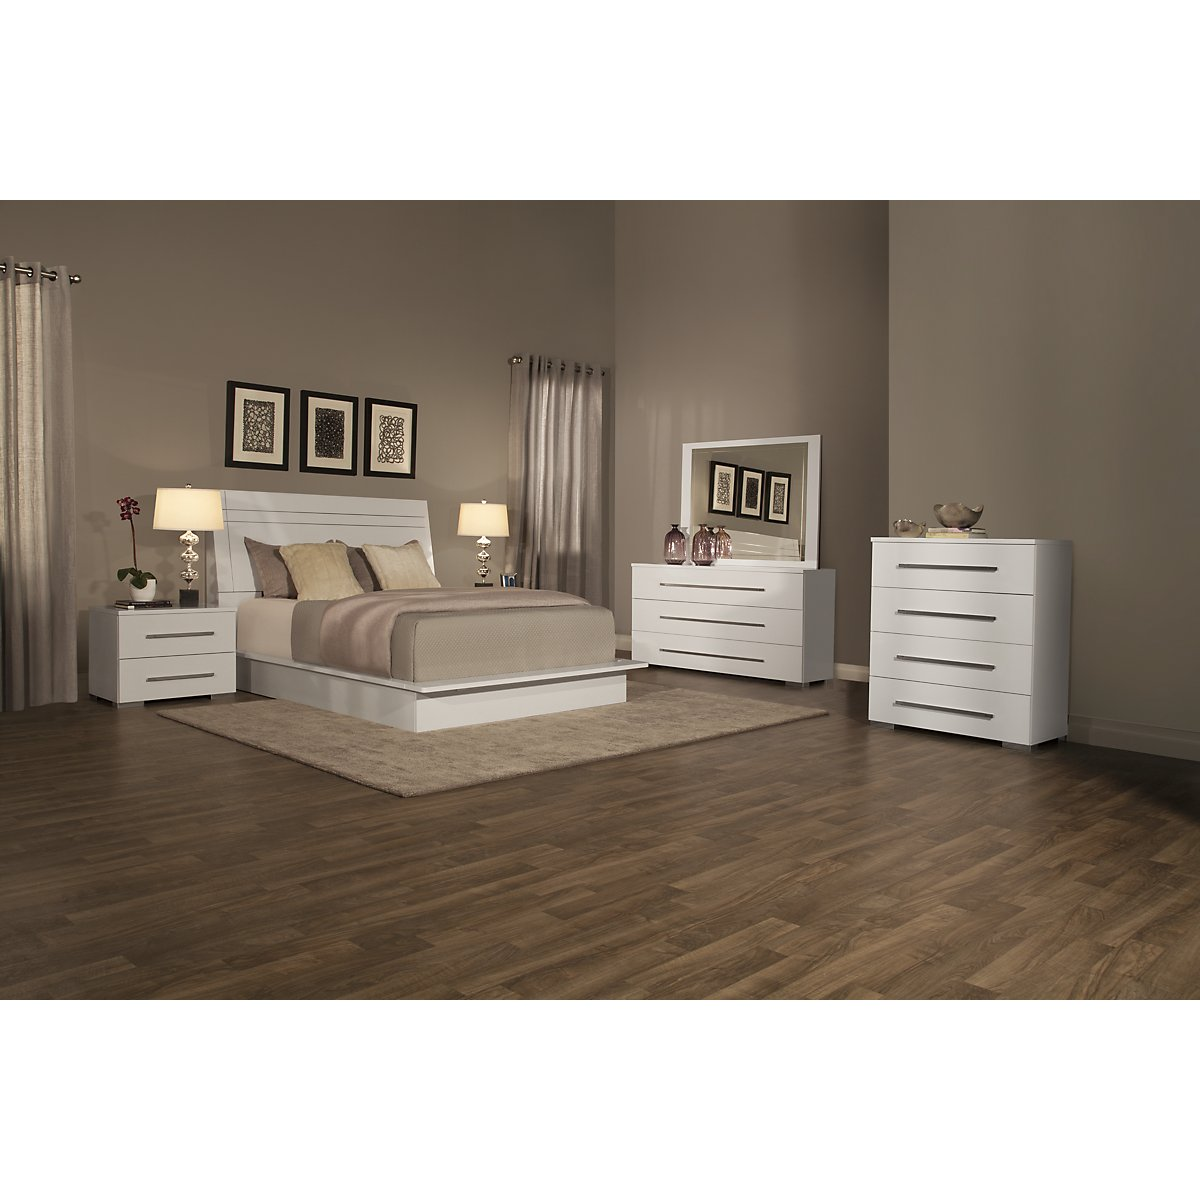 Dimora3 White Wood Platform Bed: Twin, Queen & King Beds